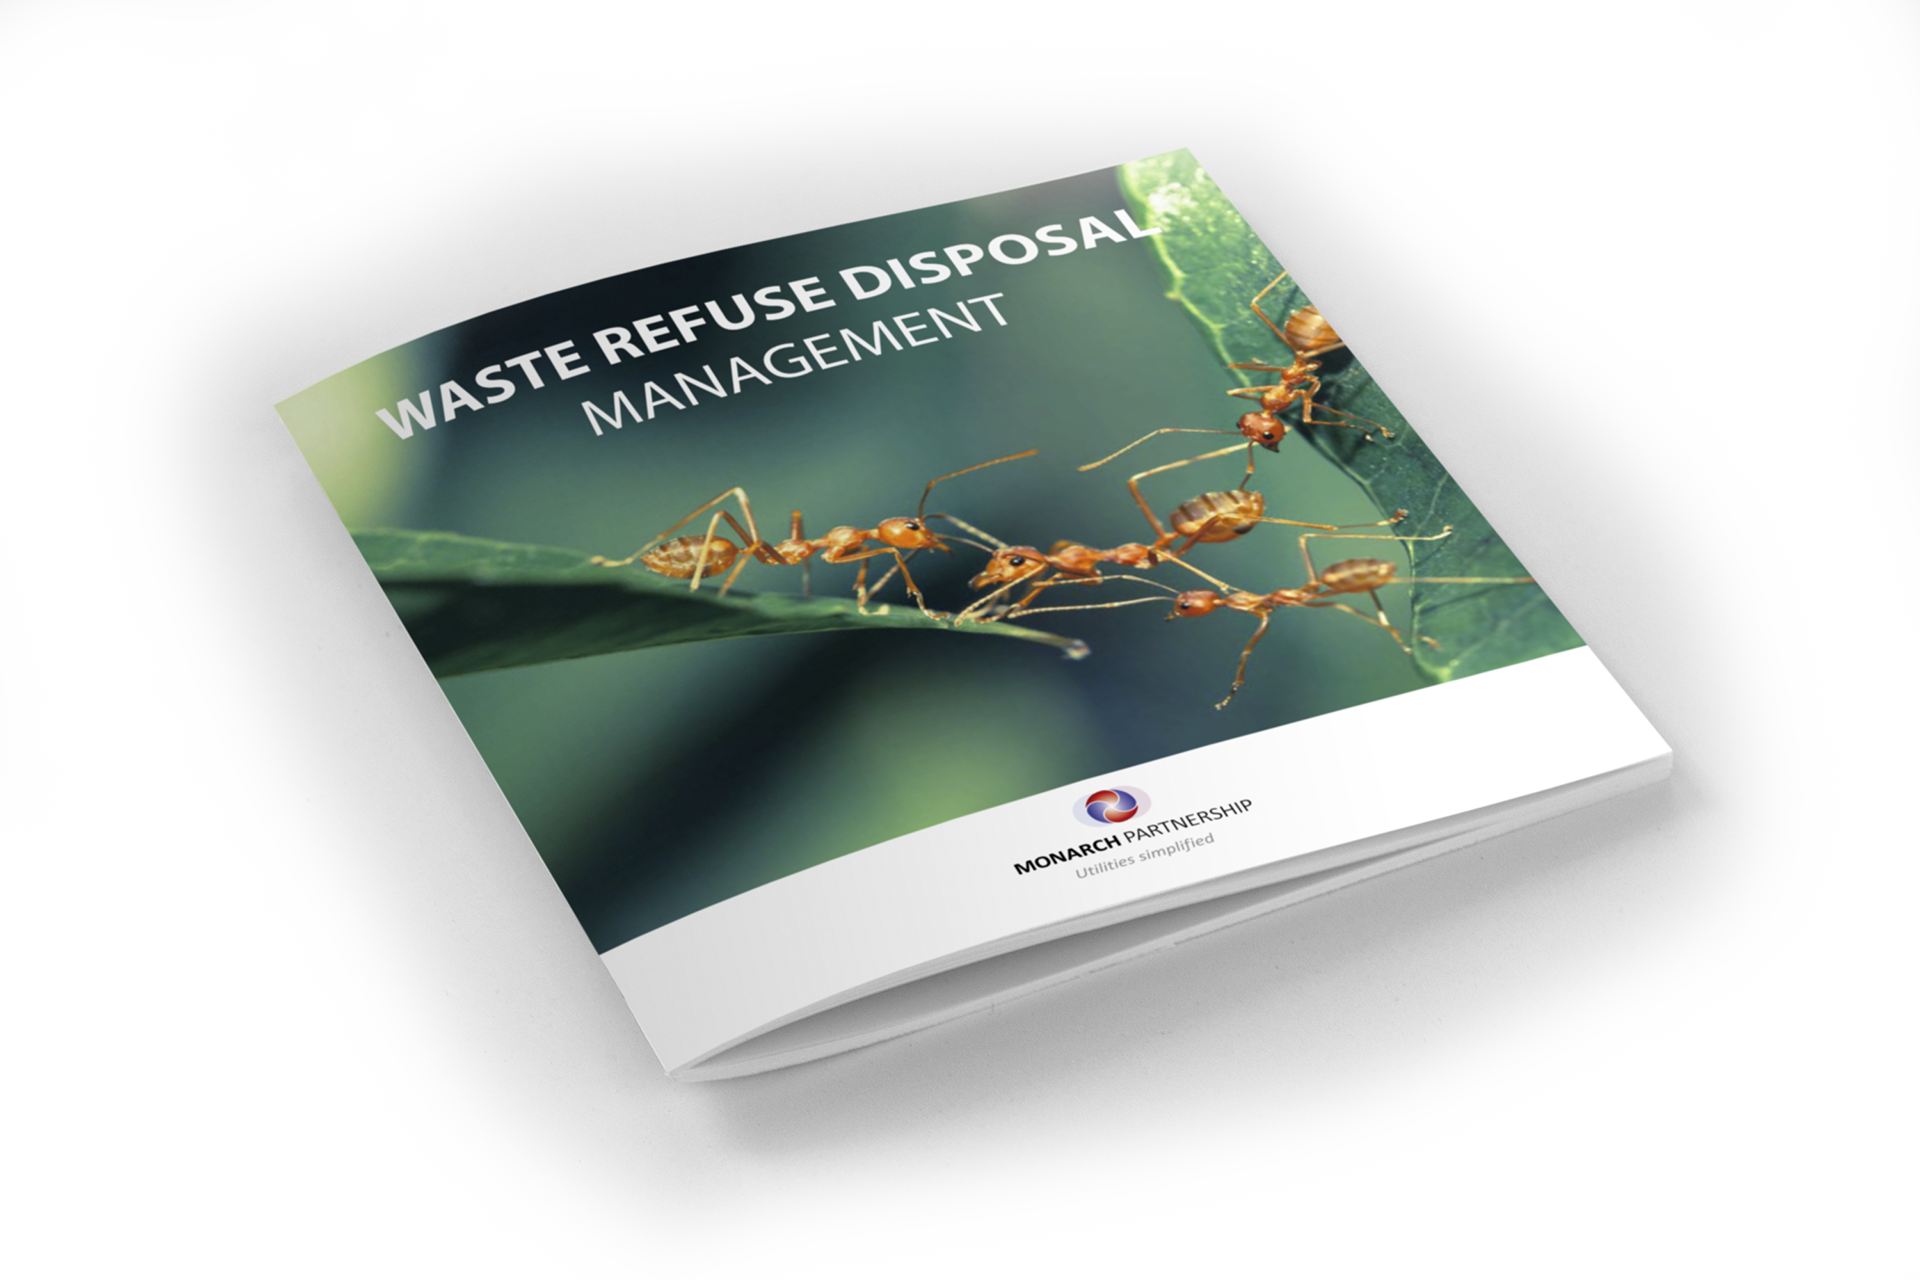 waste-refuse-disposal-management-brochure